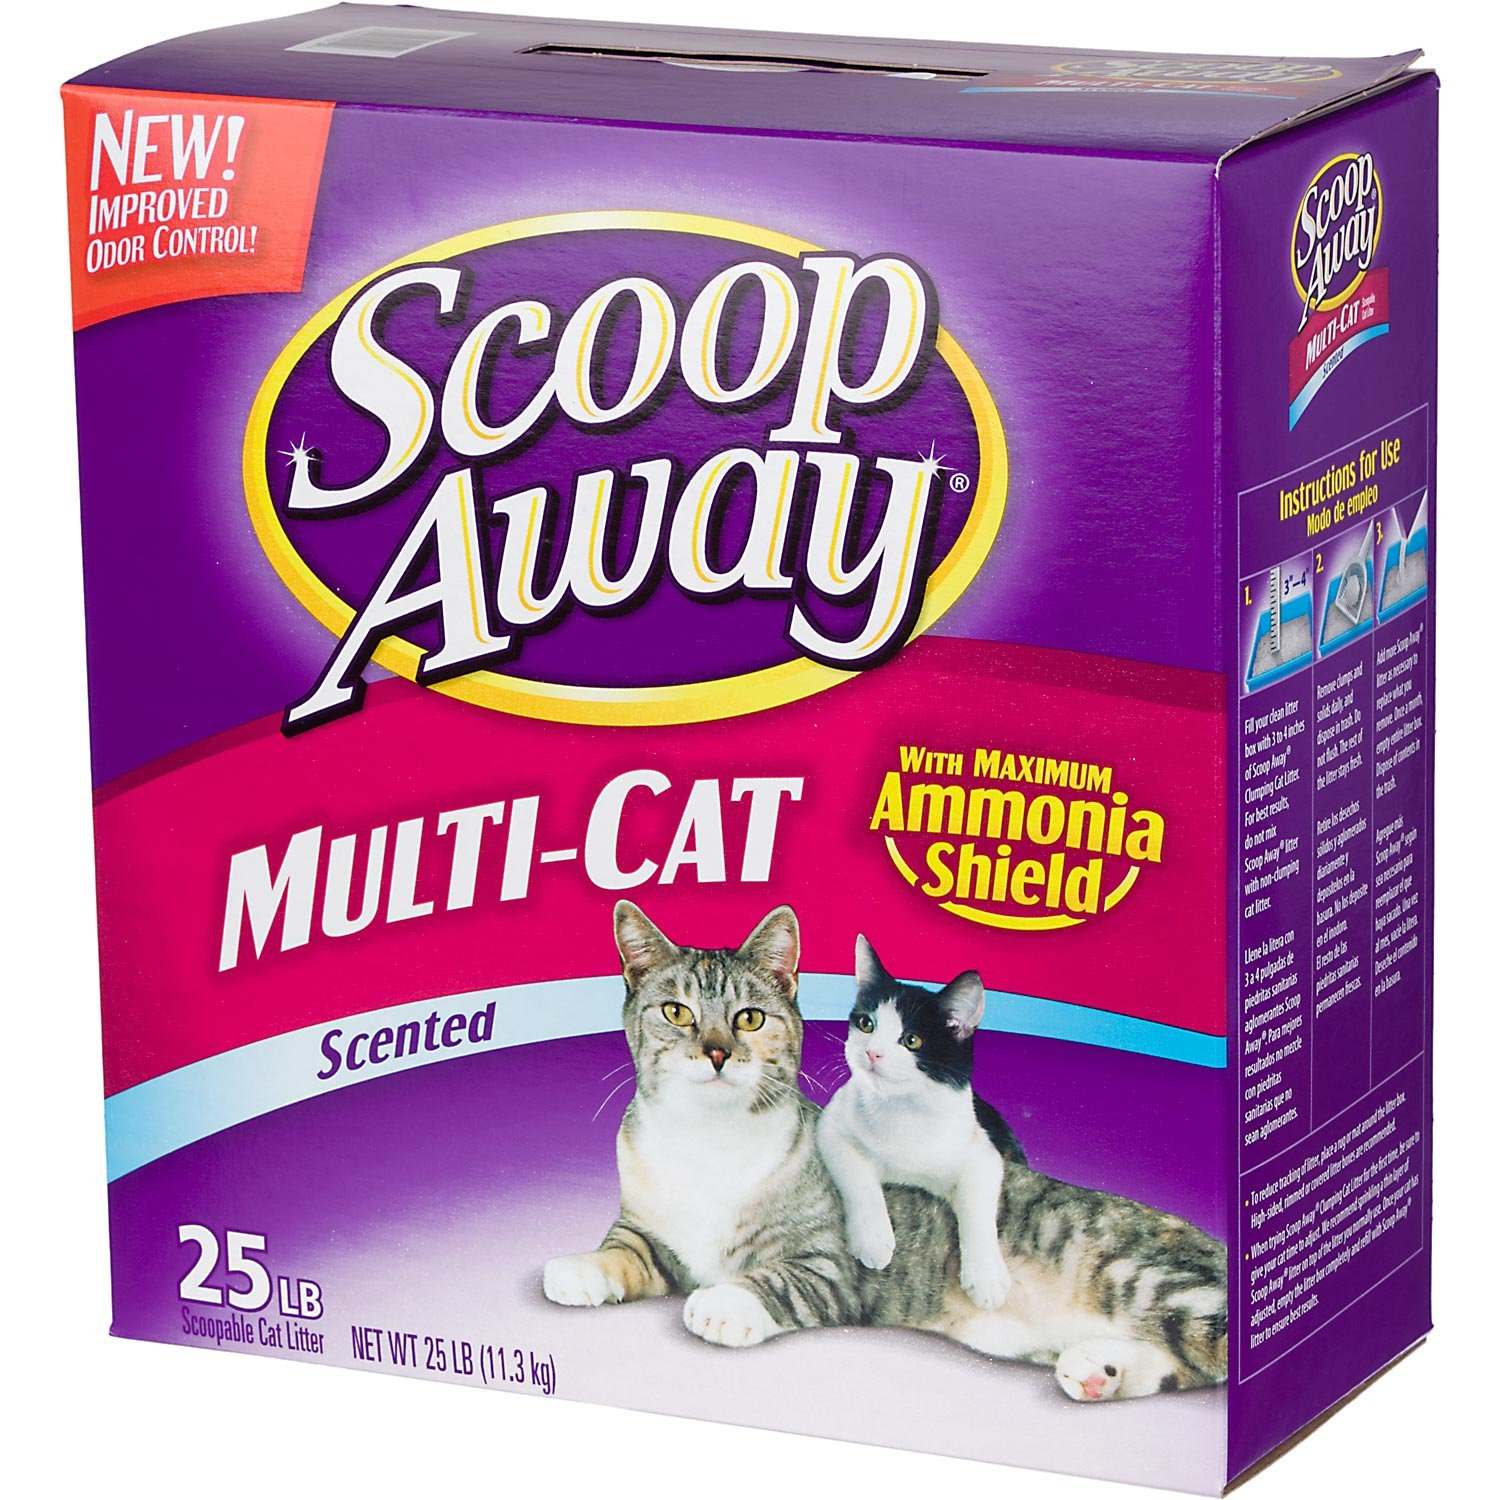 Walmart: Scoop Away Cat Litter Only $4.31! - Become A Coupon Queen - Free Printable Scoop Away Coupons